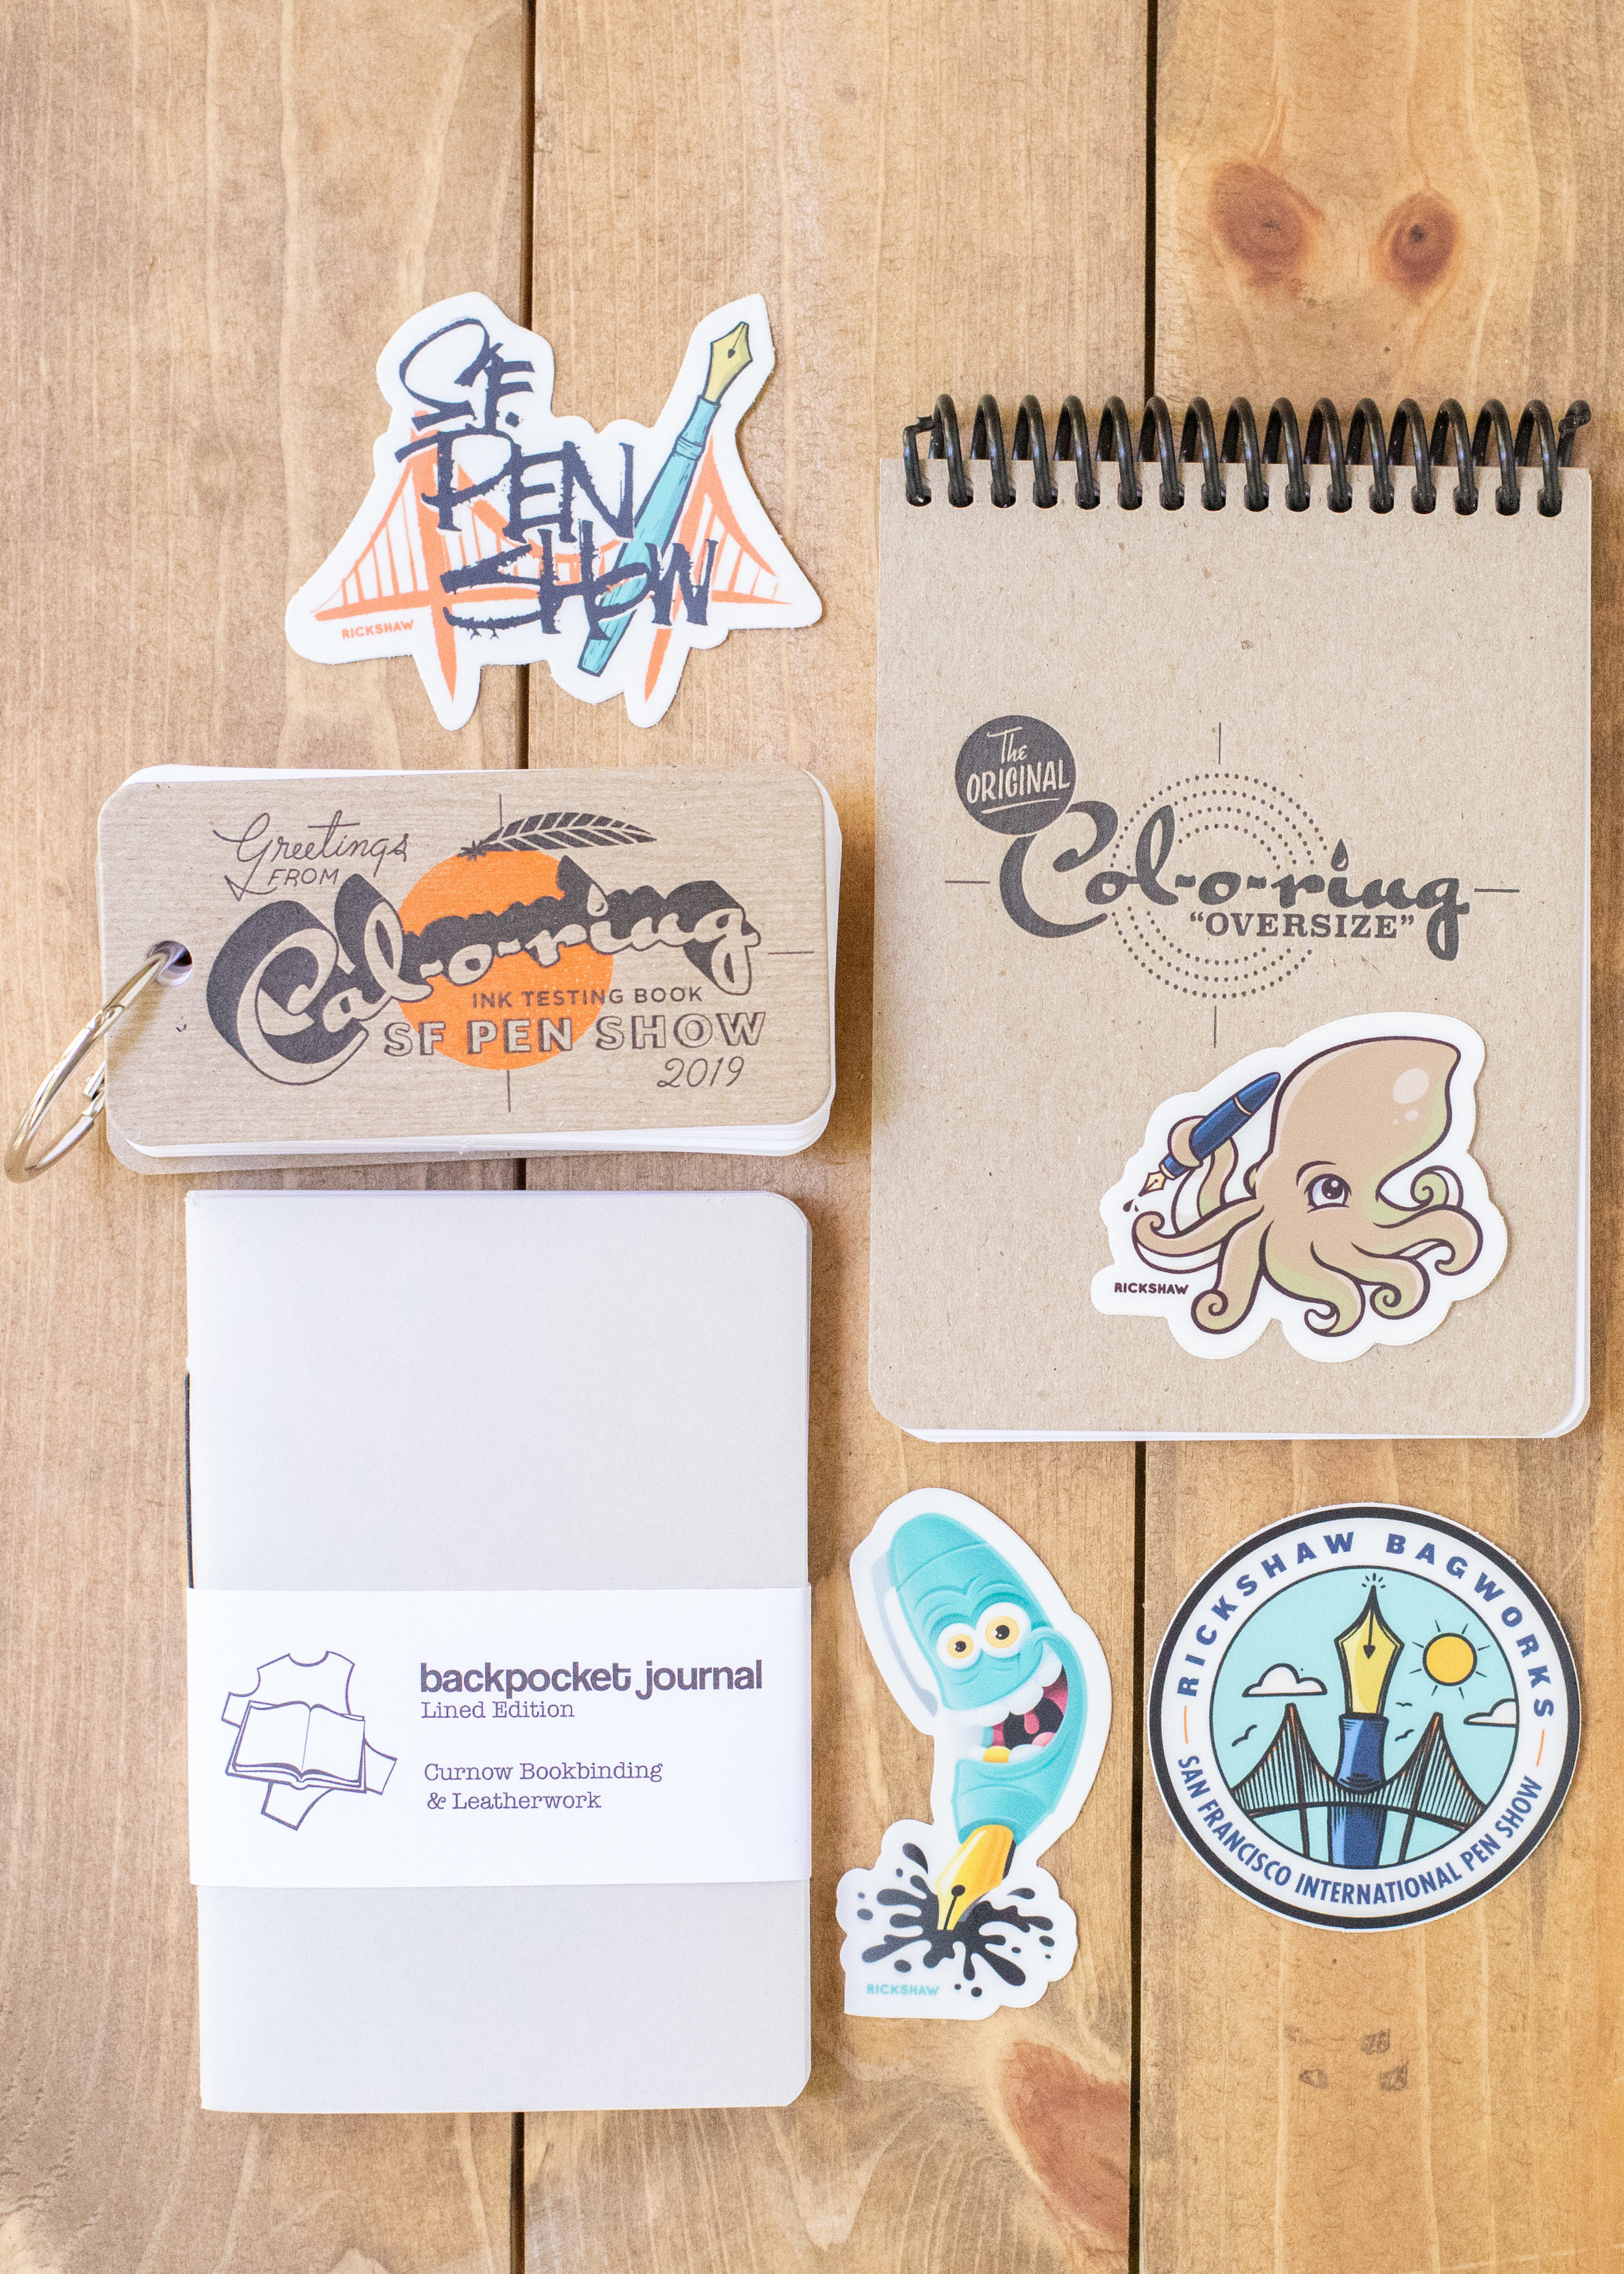 Small things: - Fun stickers from RickshawBackpocket Journals from CurnowCal-o-ring and Col-o-ring oversize from the Well-Appointed Desk